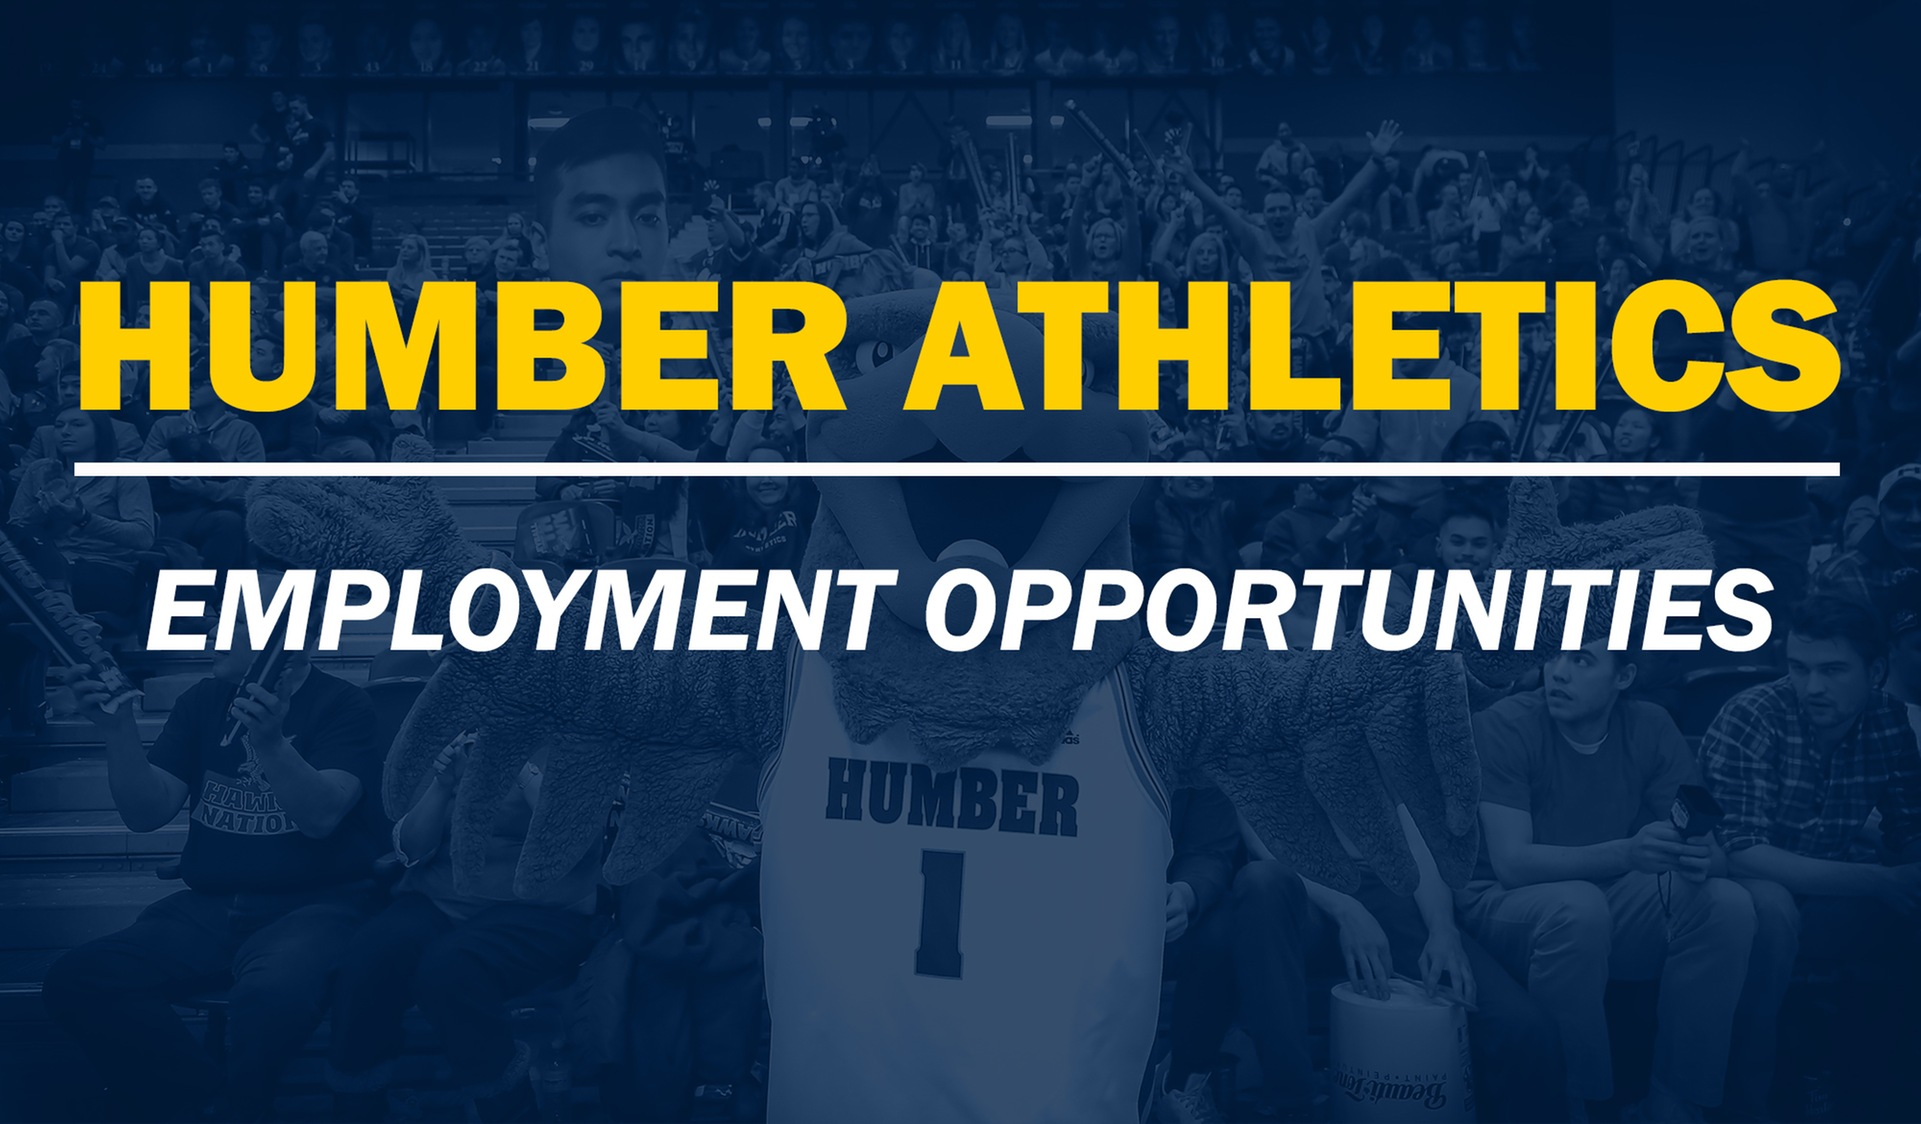 Humber Athletics Now Hiring for Fall 2019